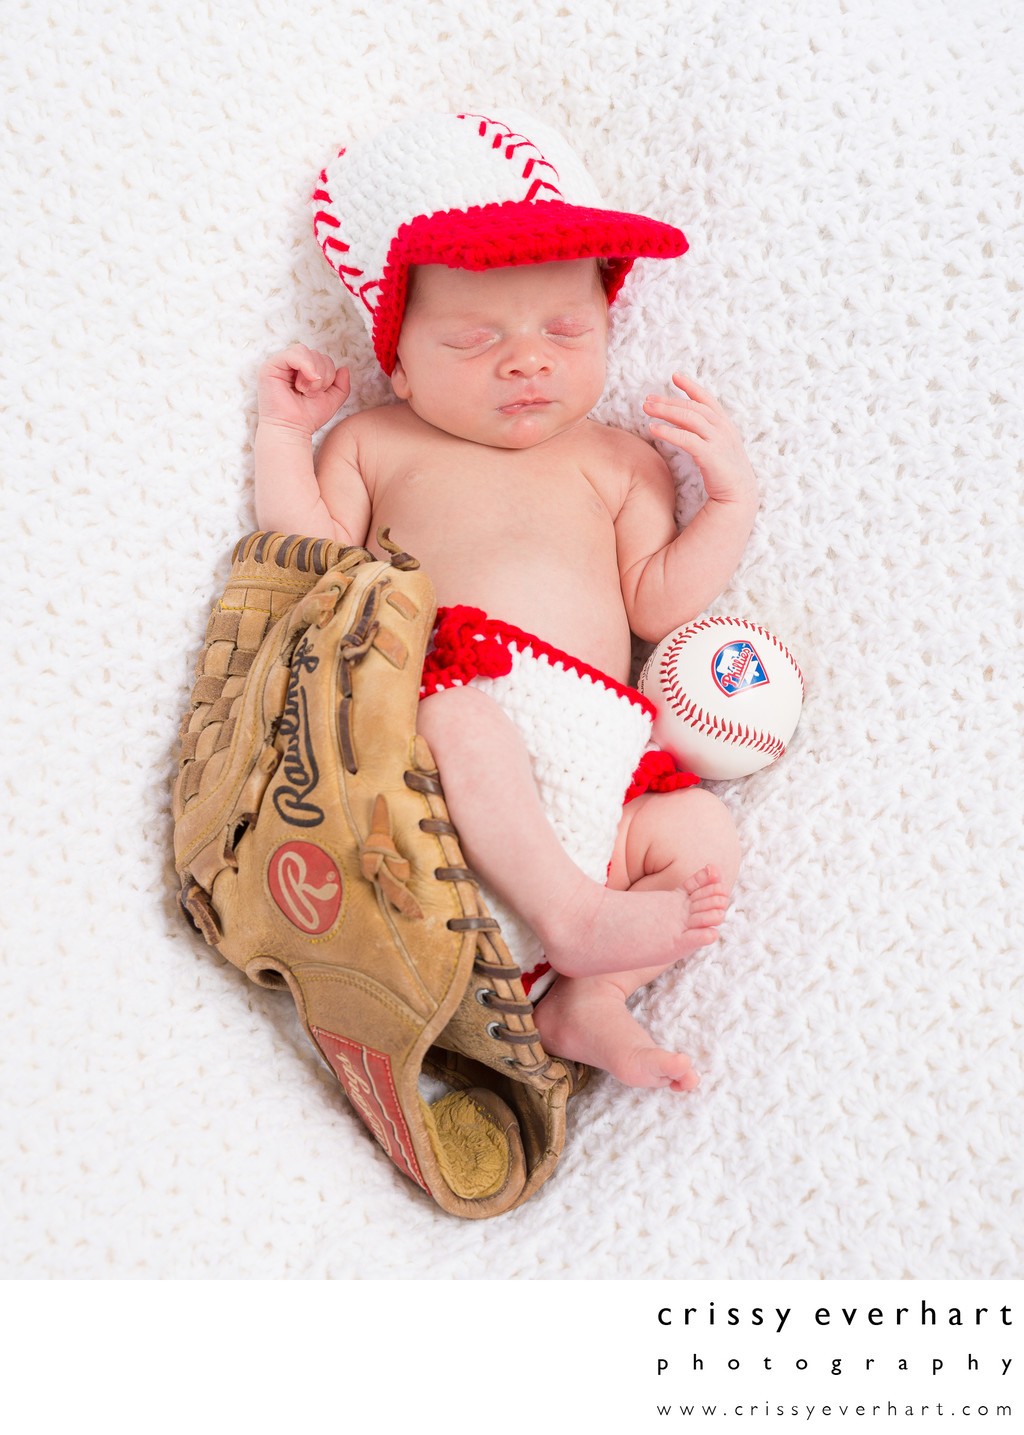 Baby in Knit Phillies Outfit with Baseball and Glove